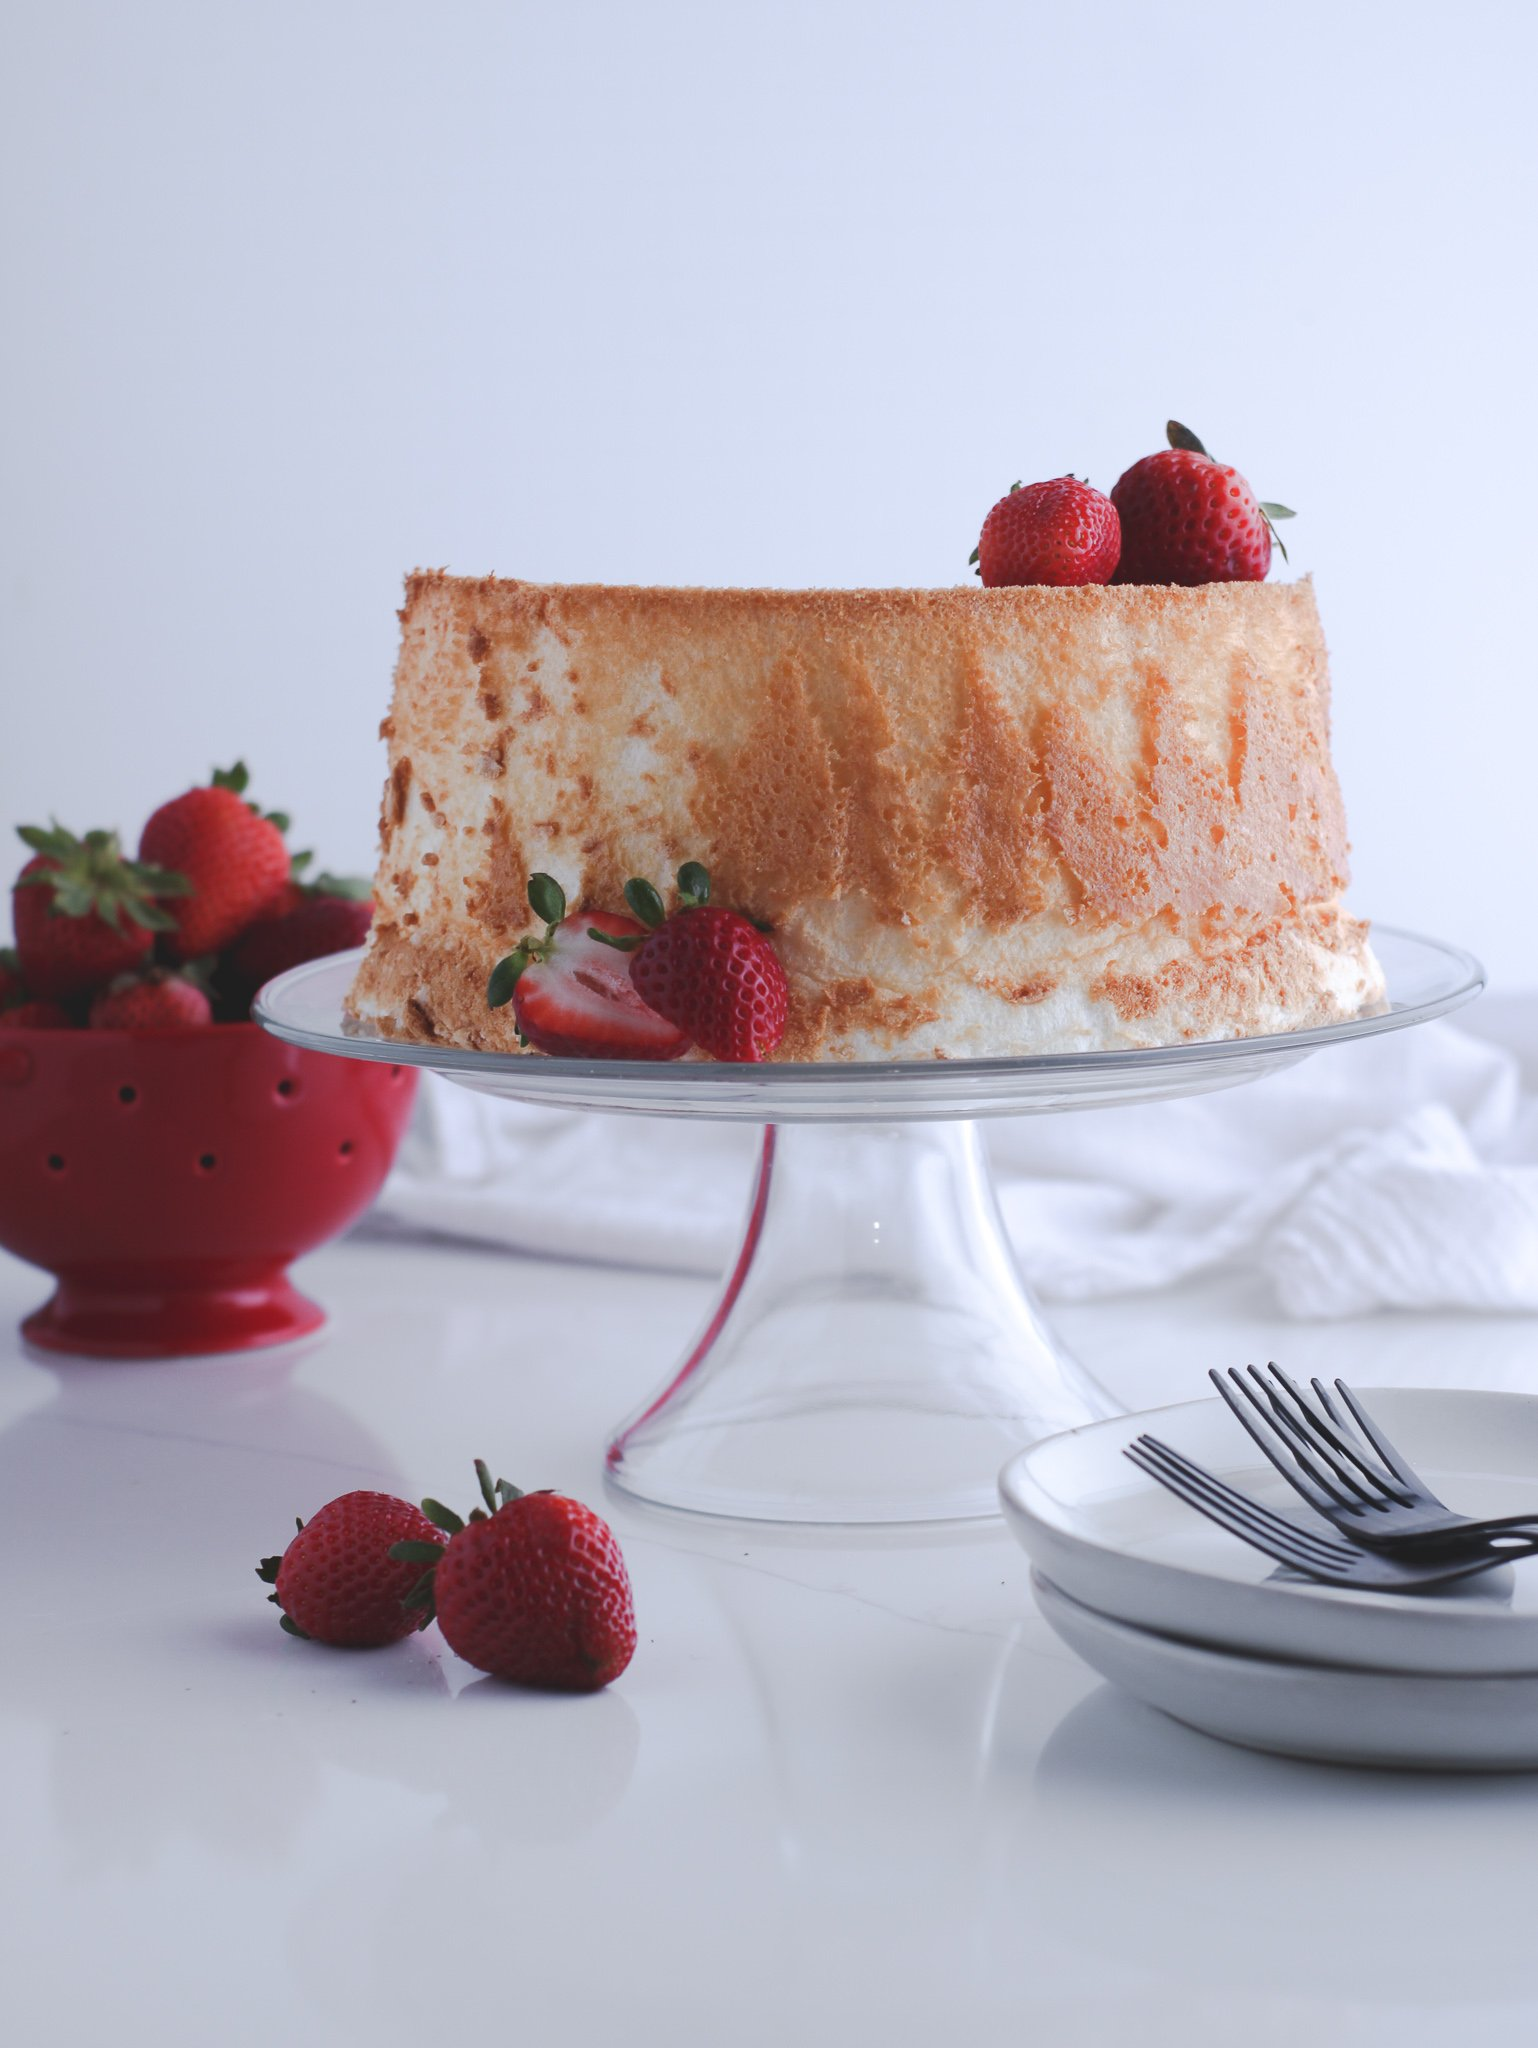 Angel food cake sitting on a glass cake stand surround by fresh strawberries and plates and forks to enjoy it once it's sliced.